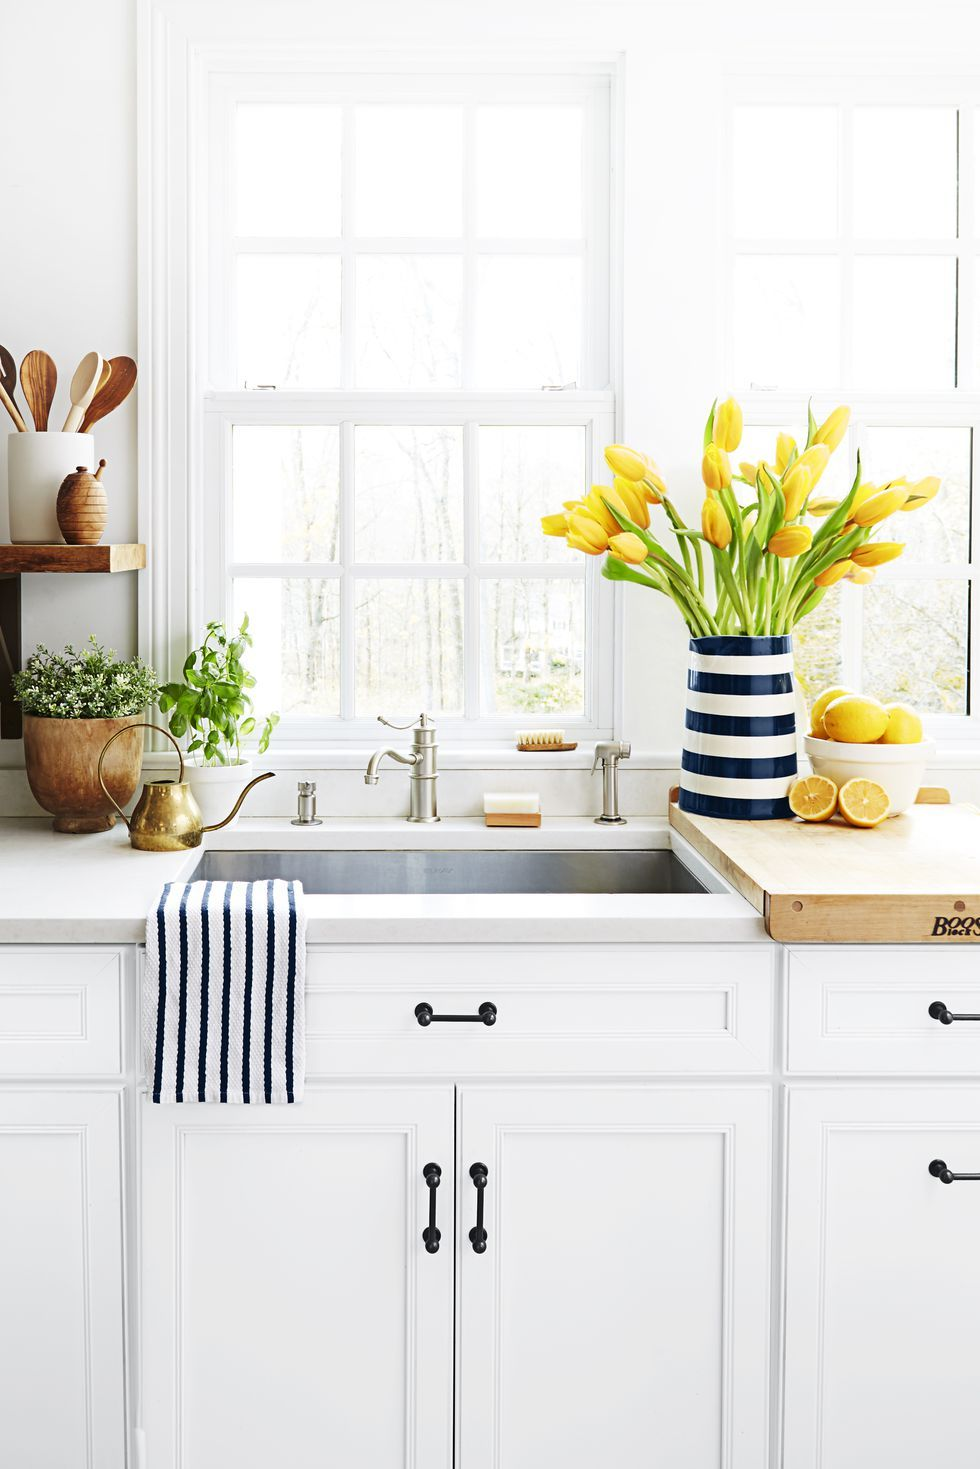 Our Best Spring Cleaning Tips for a Sparkling Home